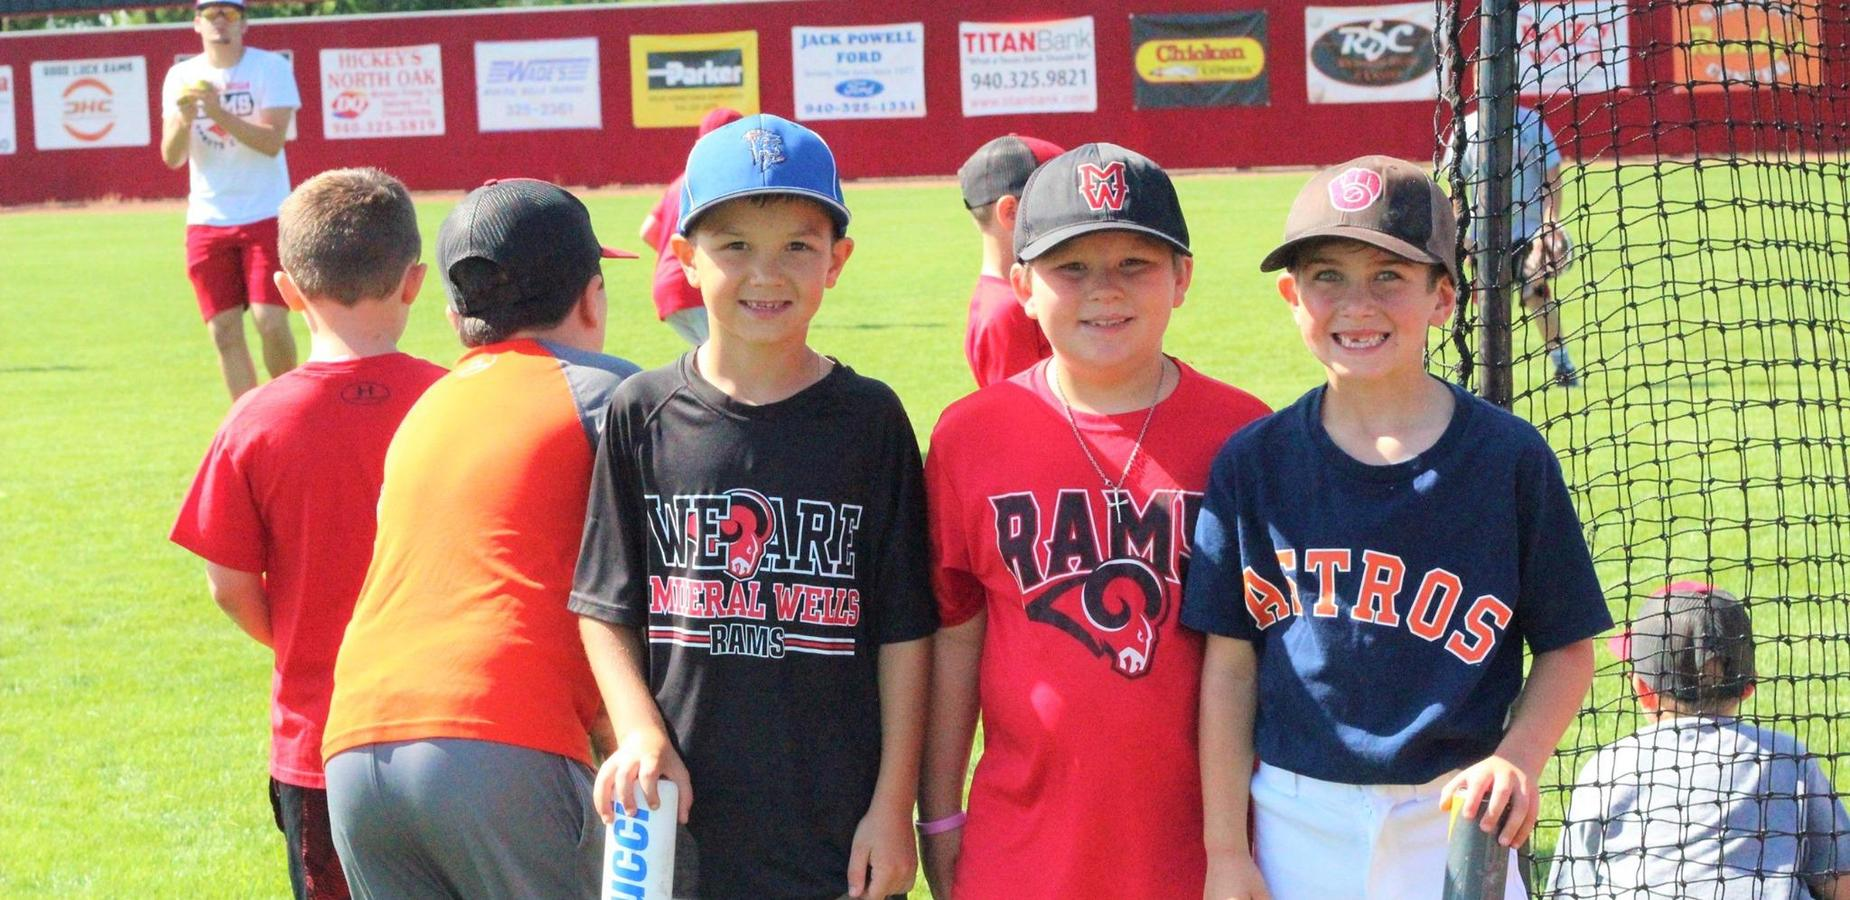 Rams Baseball Camp